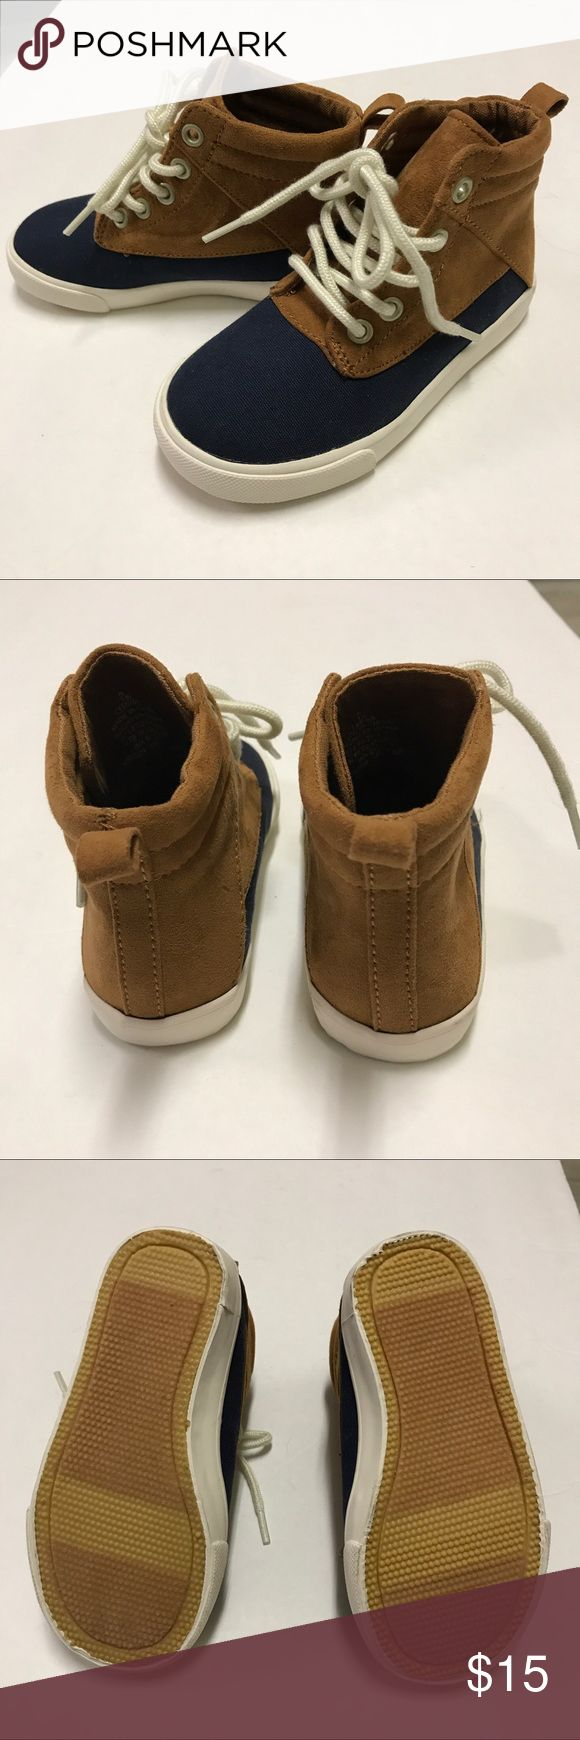 Toddler Shoes for Boys - Size 8 NWT! Old Navy Shoes Boots